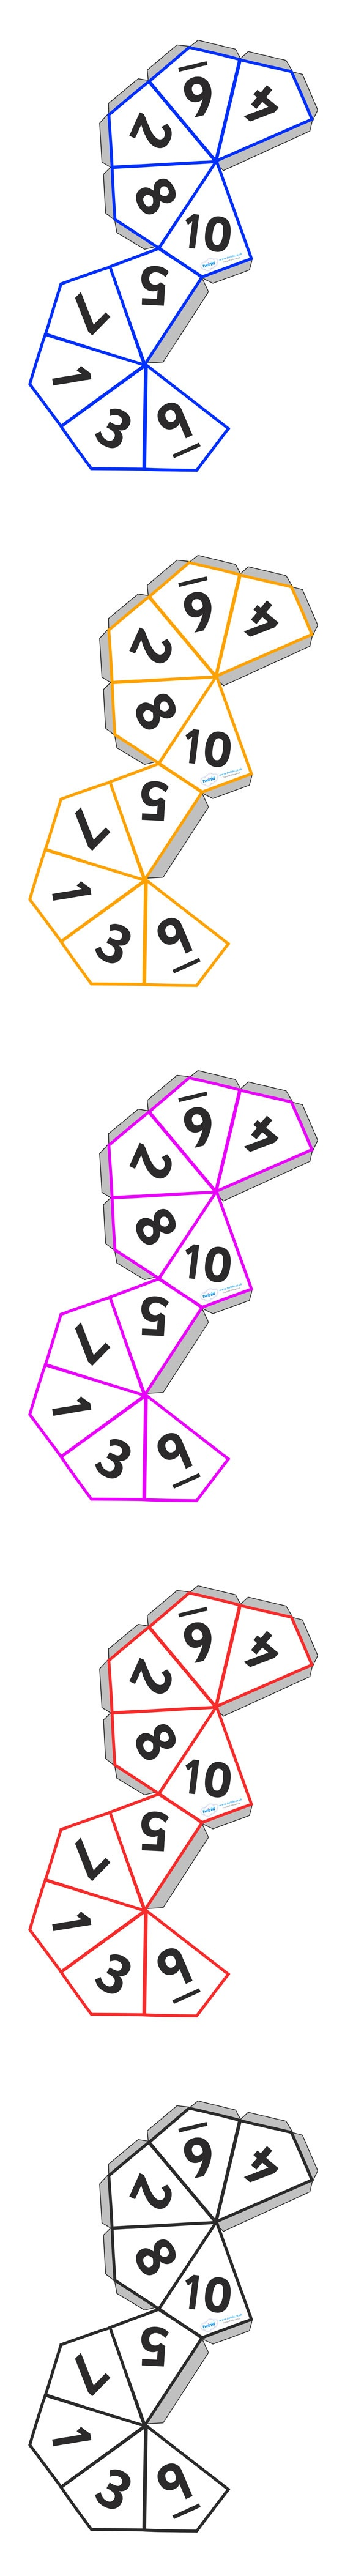 Dice Templates (1-10)  - Pop over to our site at www.twinkl.co.uk and check out our lovely Numeracy primary teaching resources! numeracy, maths, dice, template #Numeracy #Numeracy_Resources